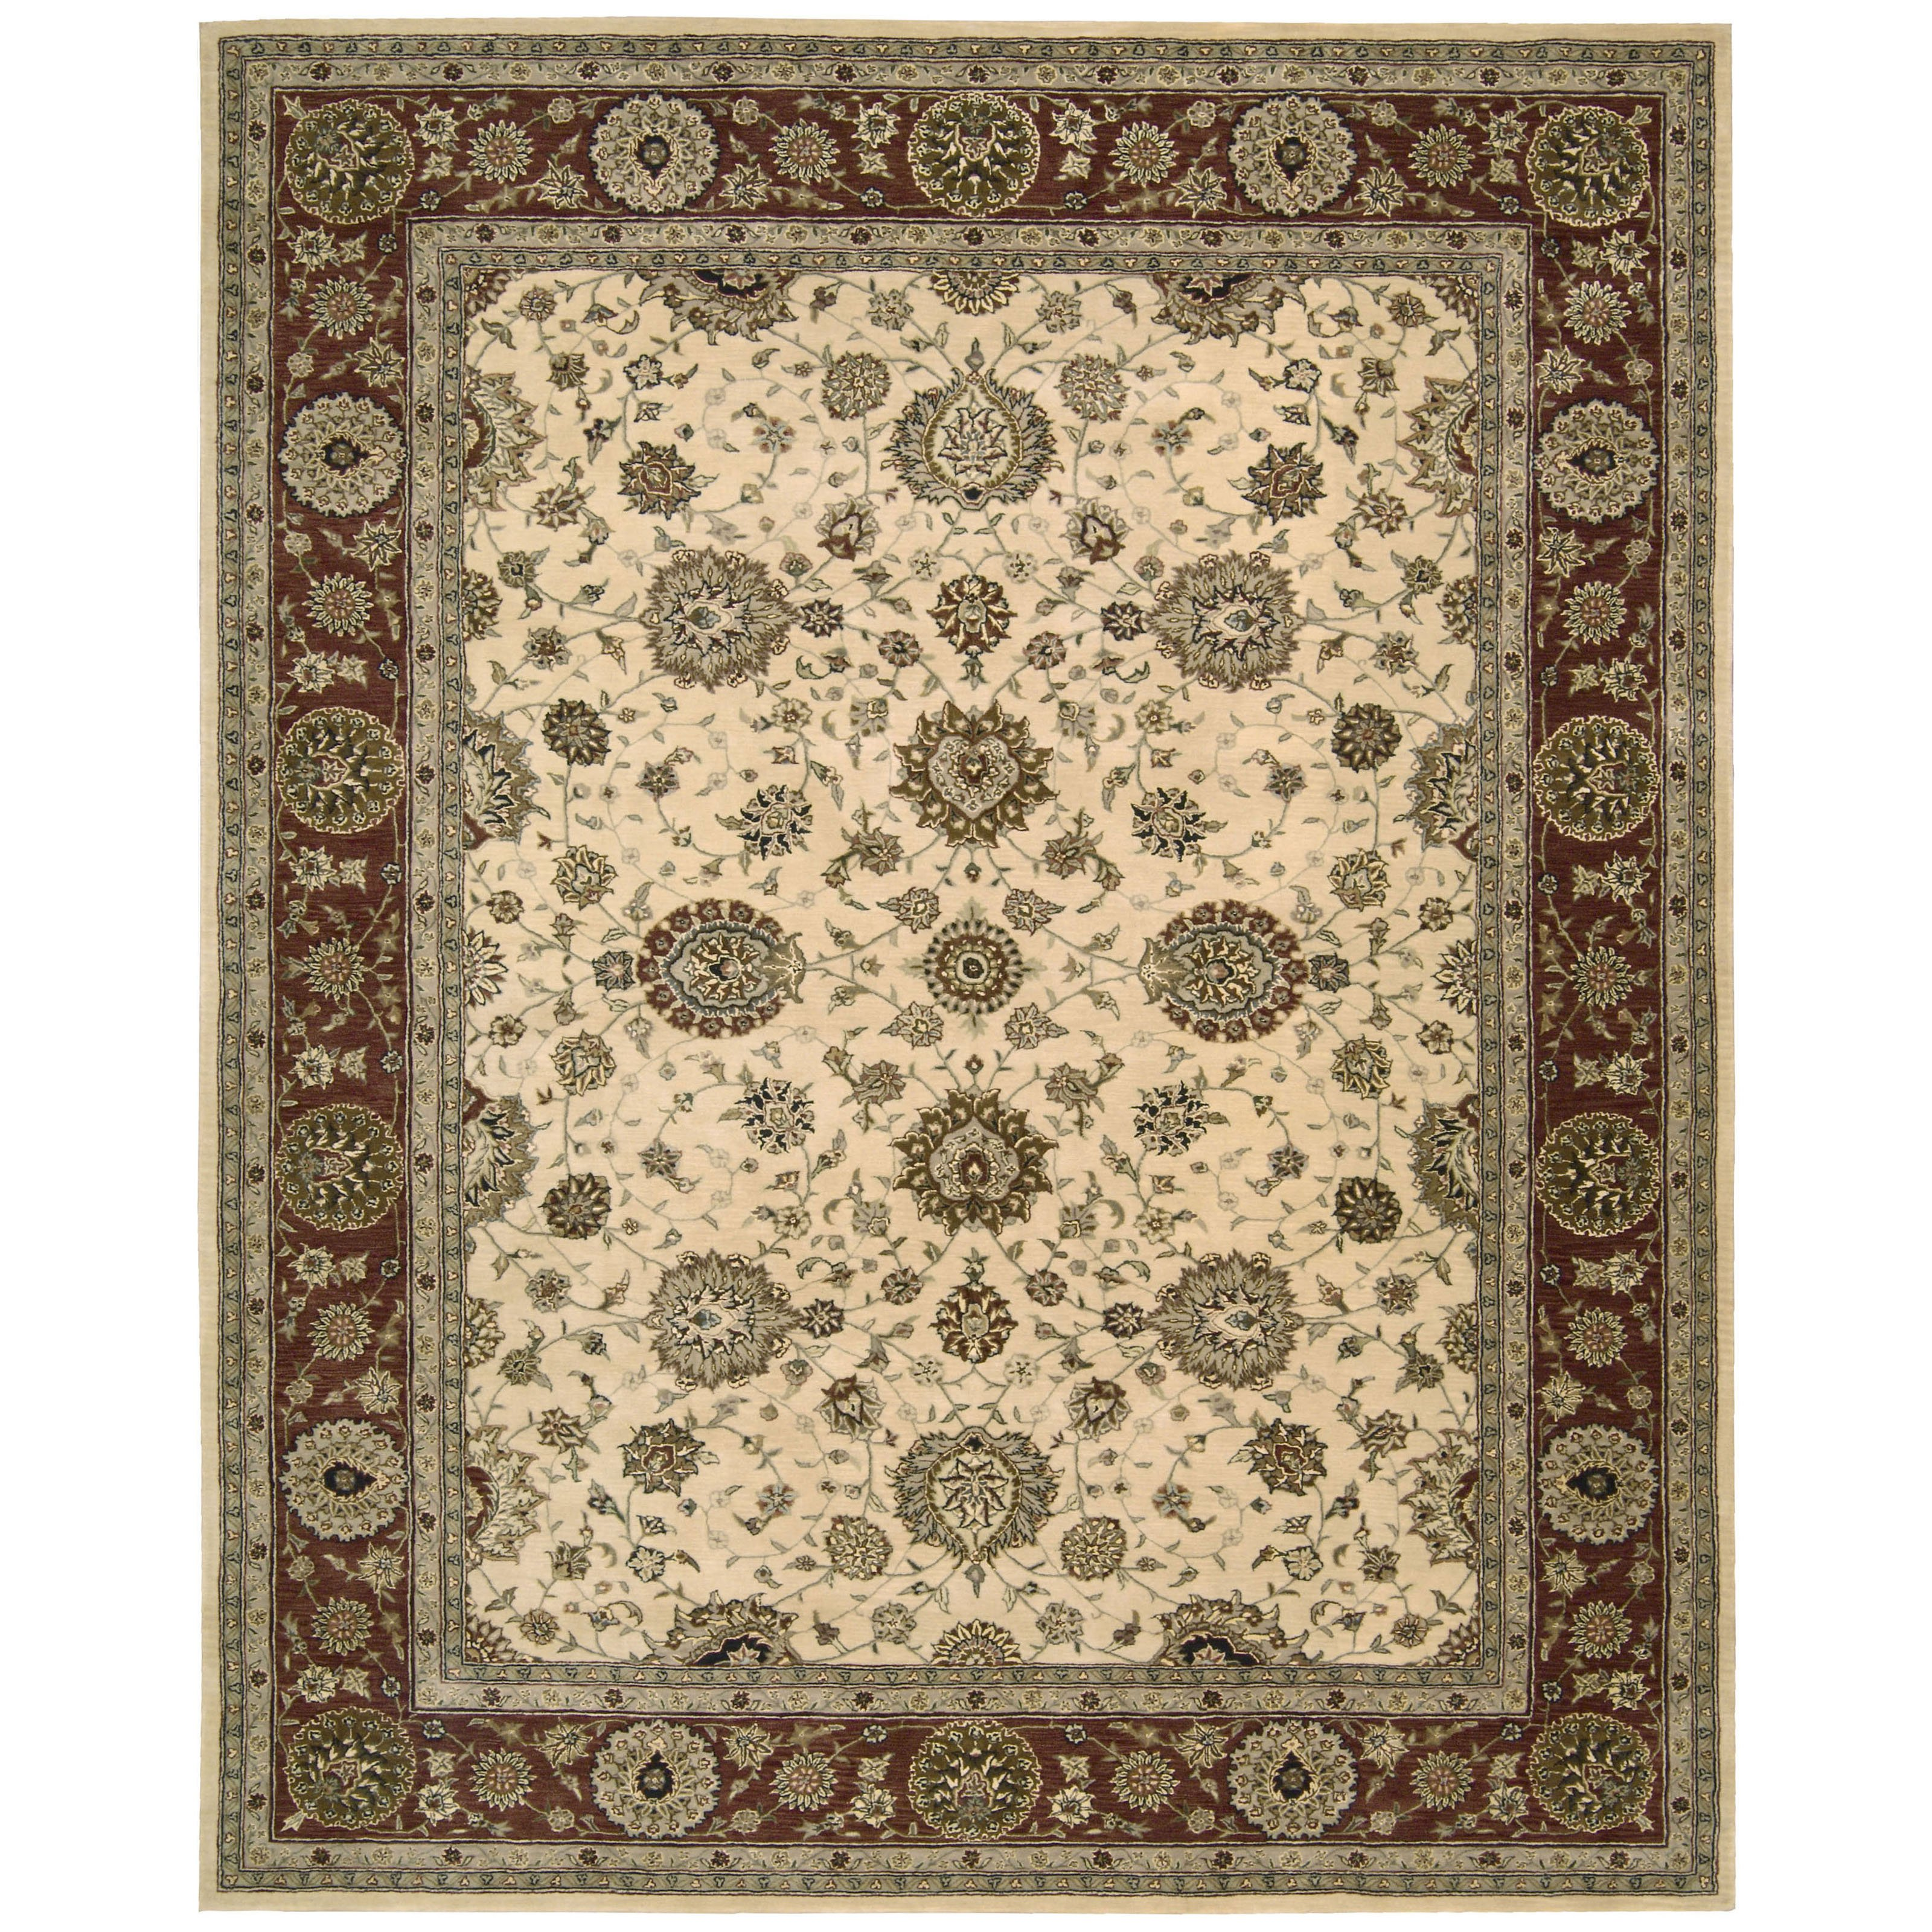 Nourison 2000 2204 Oriental Rug Ivory-2 x 3 ft. by Overstock